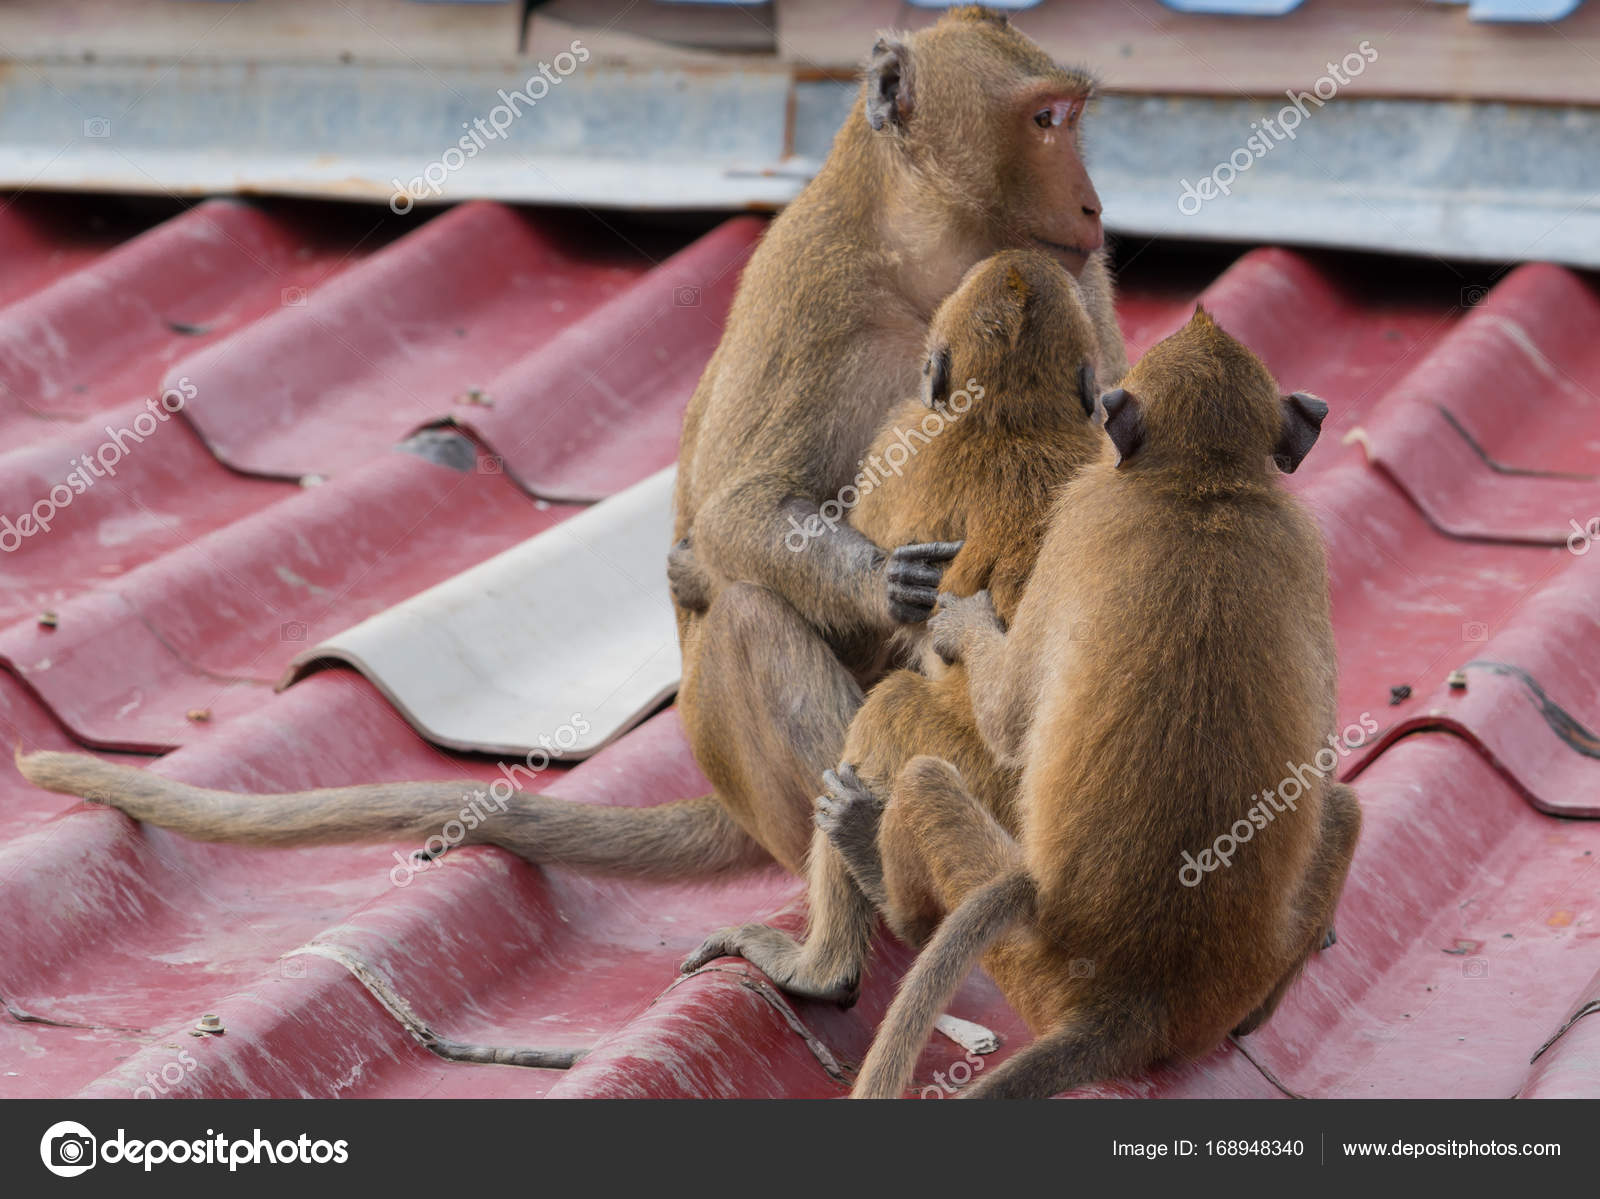 Of monkey having sex Picture